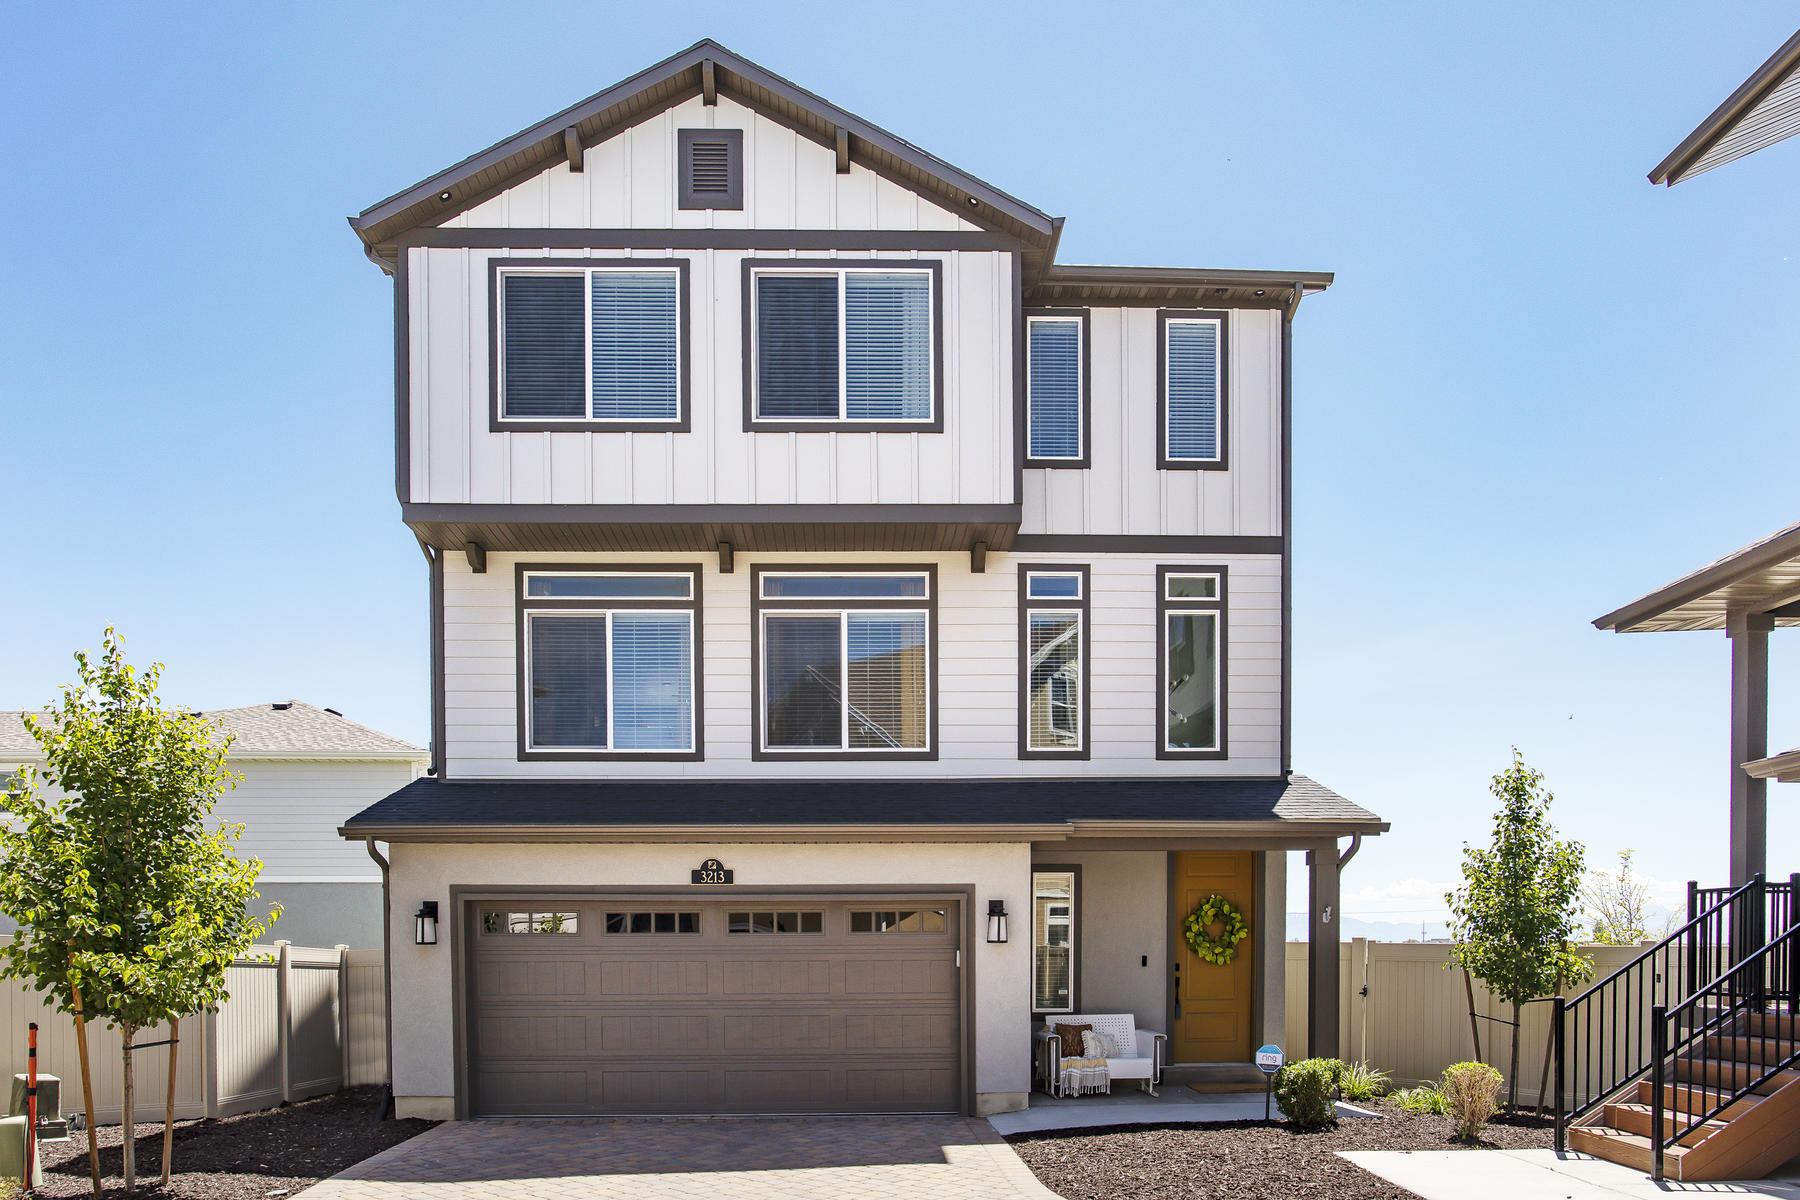 Single Family Homes for Sale at Meticulous Home Is Better Than New Construction! 3213 W 2400 N Lehi, Utah 84043 United States